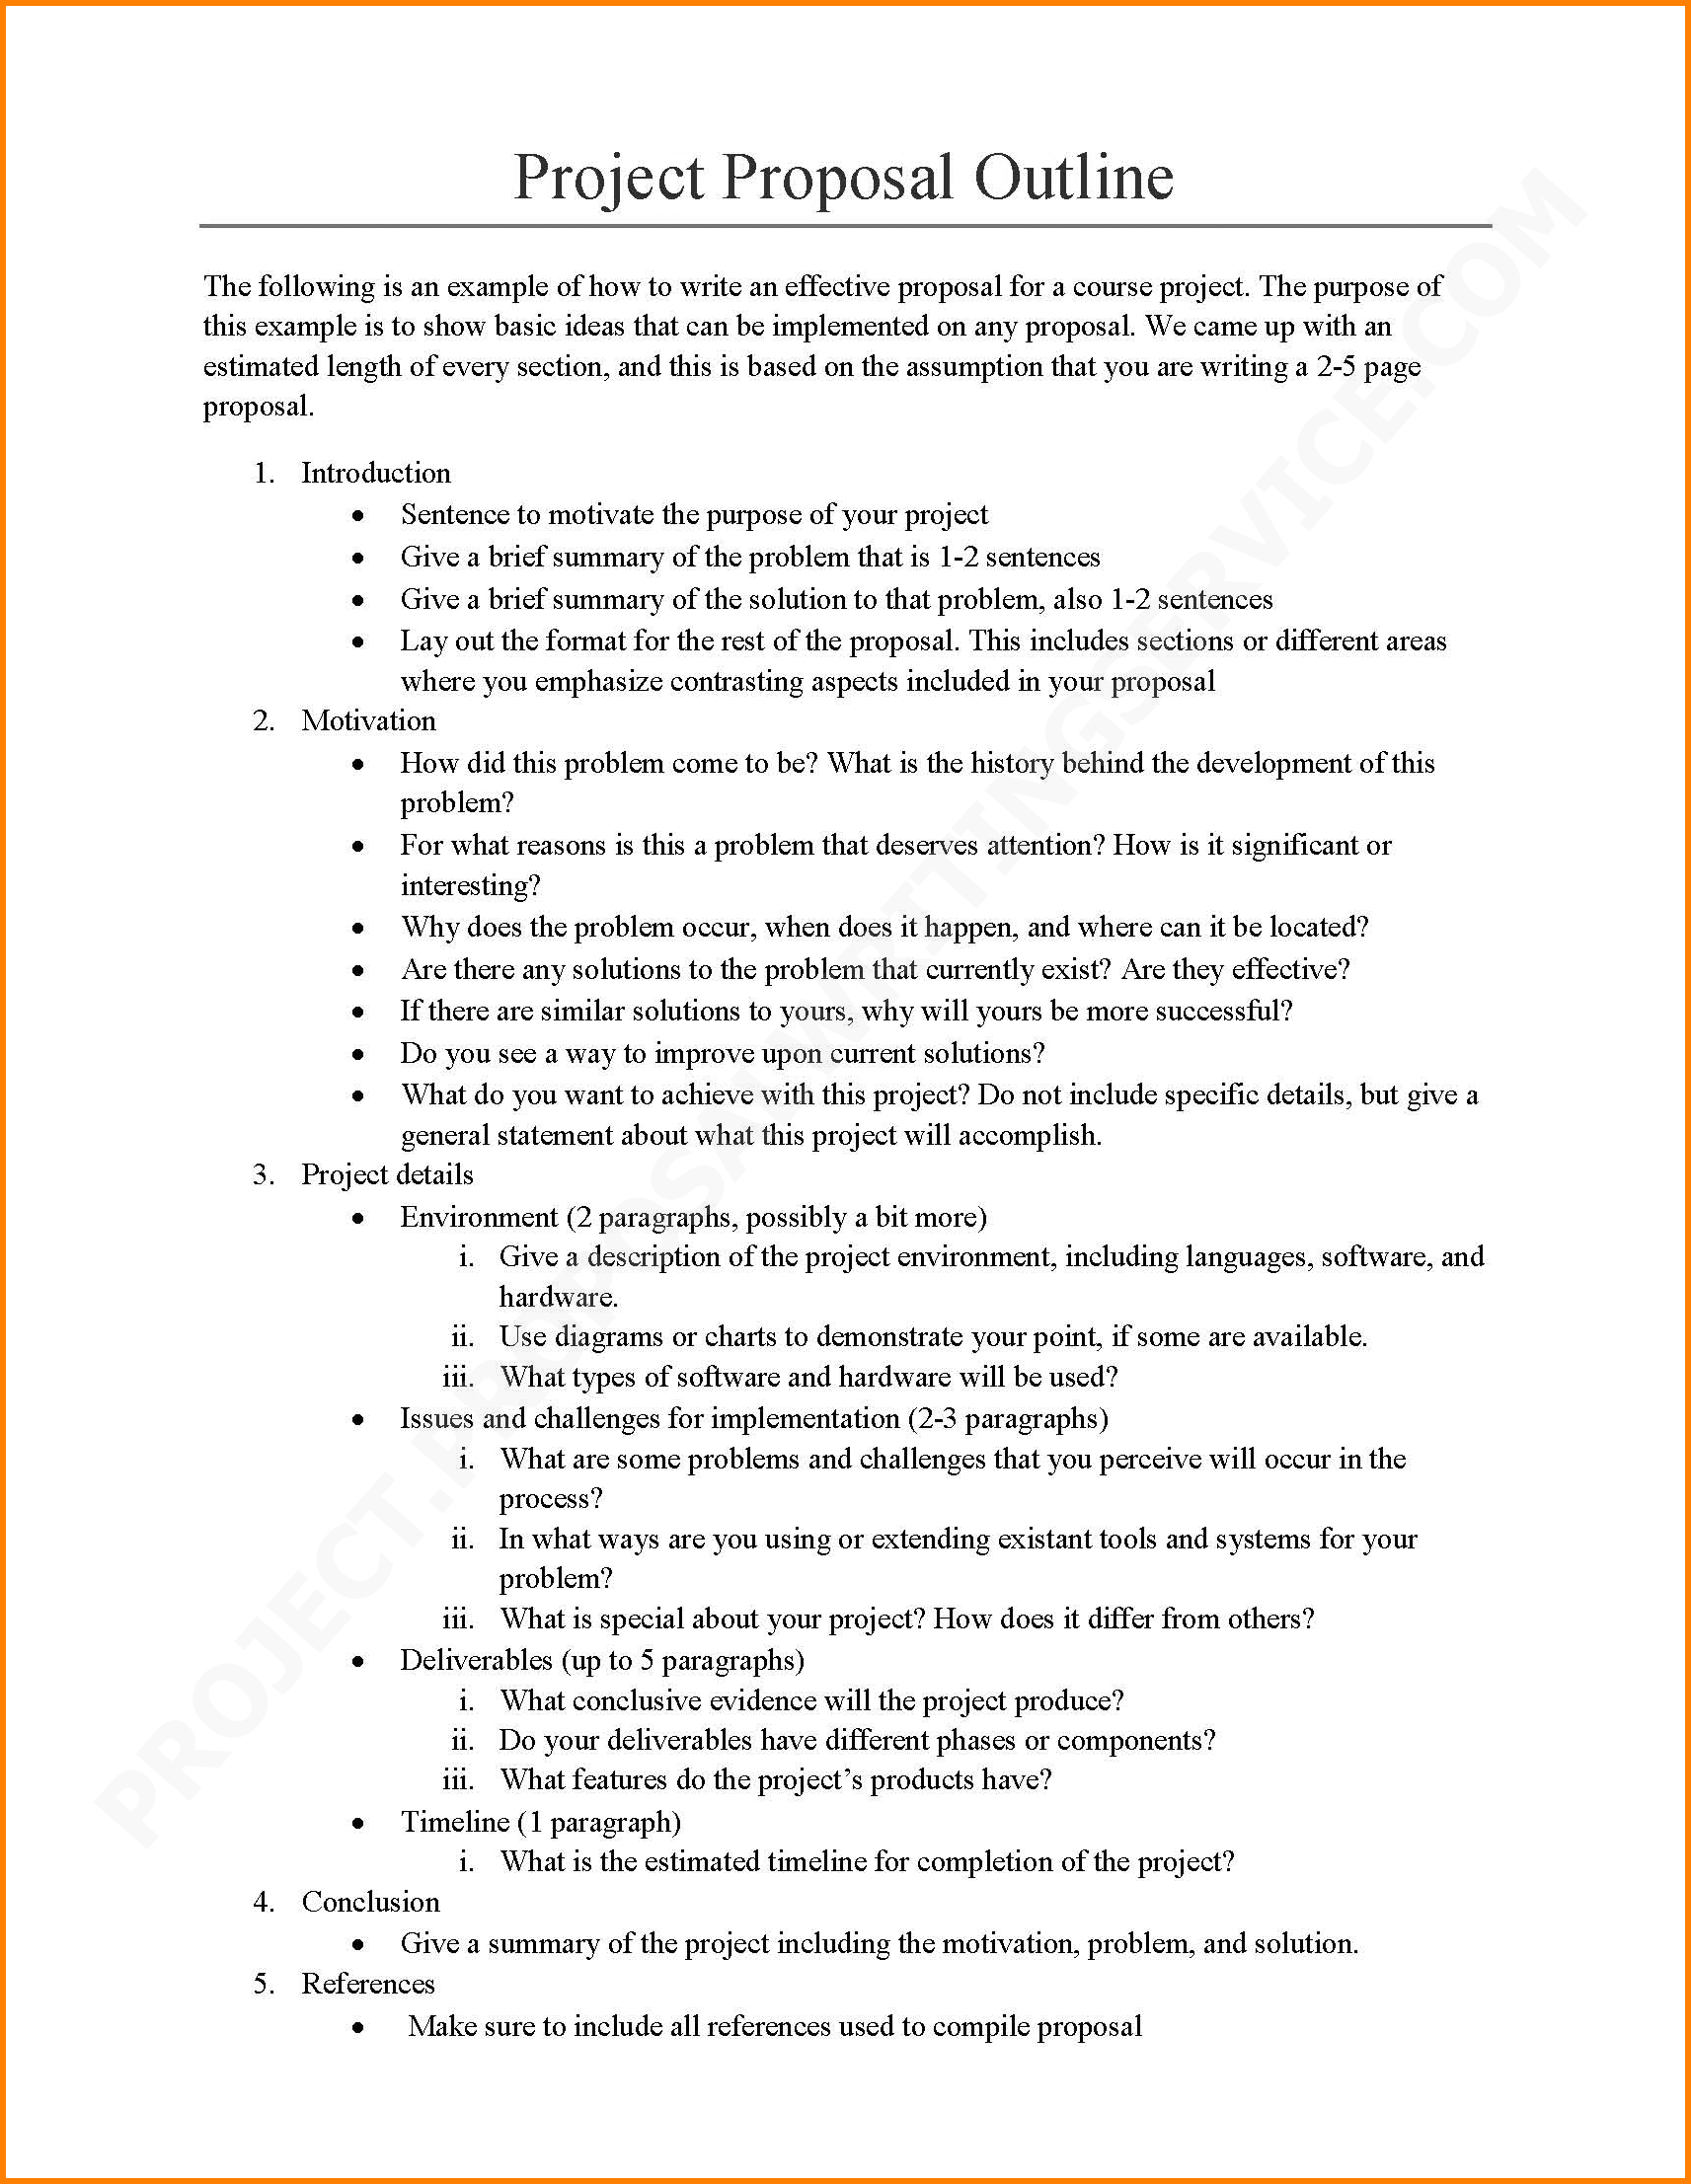 Image Result For Project Proposal For Students Template  Avid Within Course Proposal Template